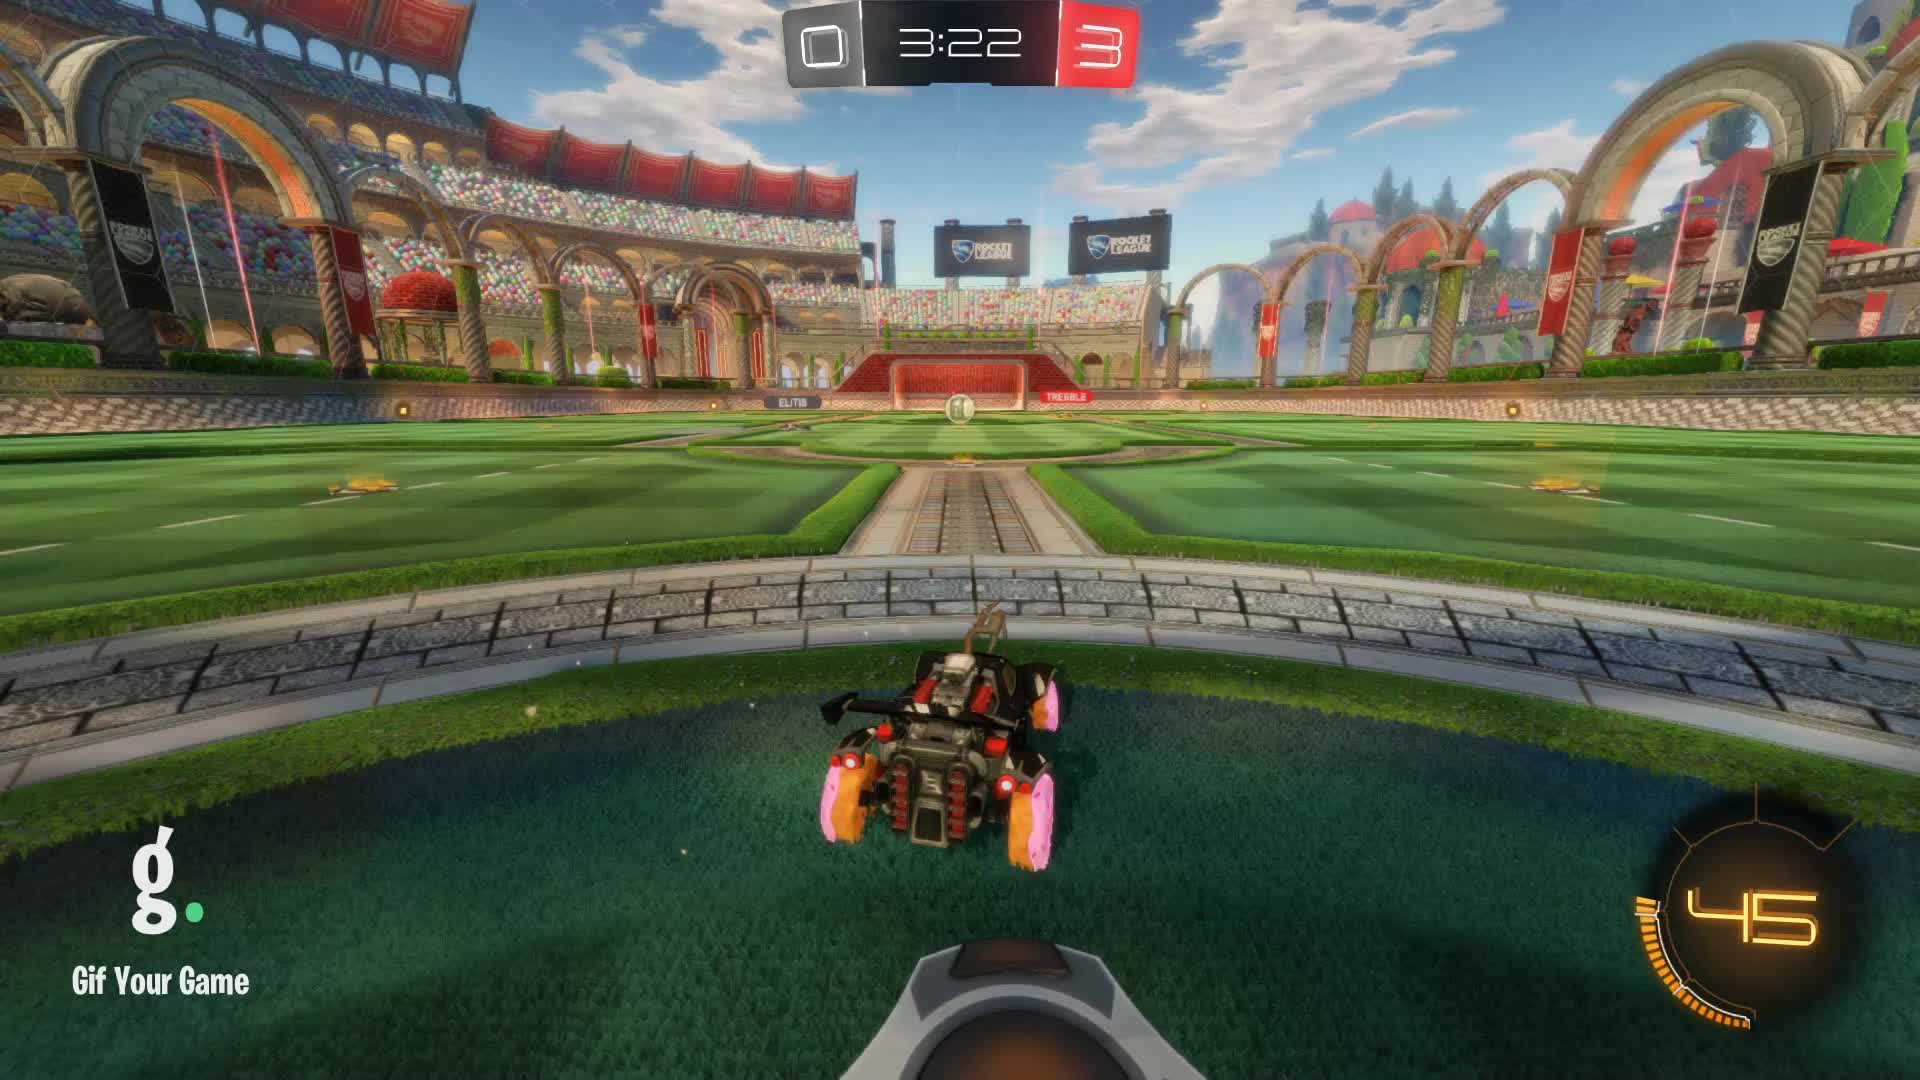 Assist, CROSSFIT JESUS, Gif Your Game, GifYourGame, Rocket League, RocketLeague, Assist 3: CROSSFIT JESUS GIFs